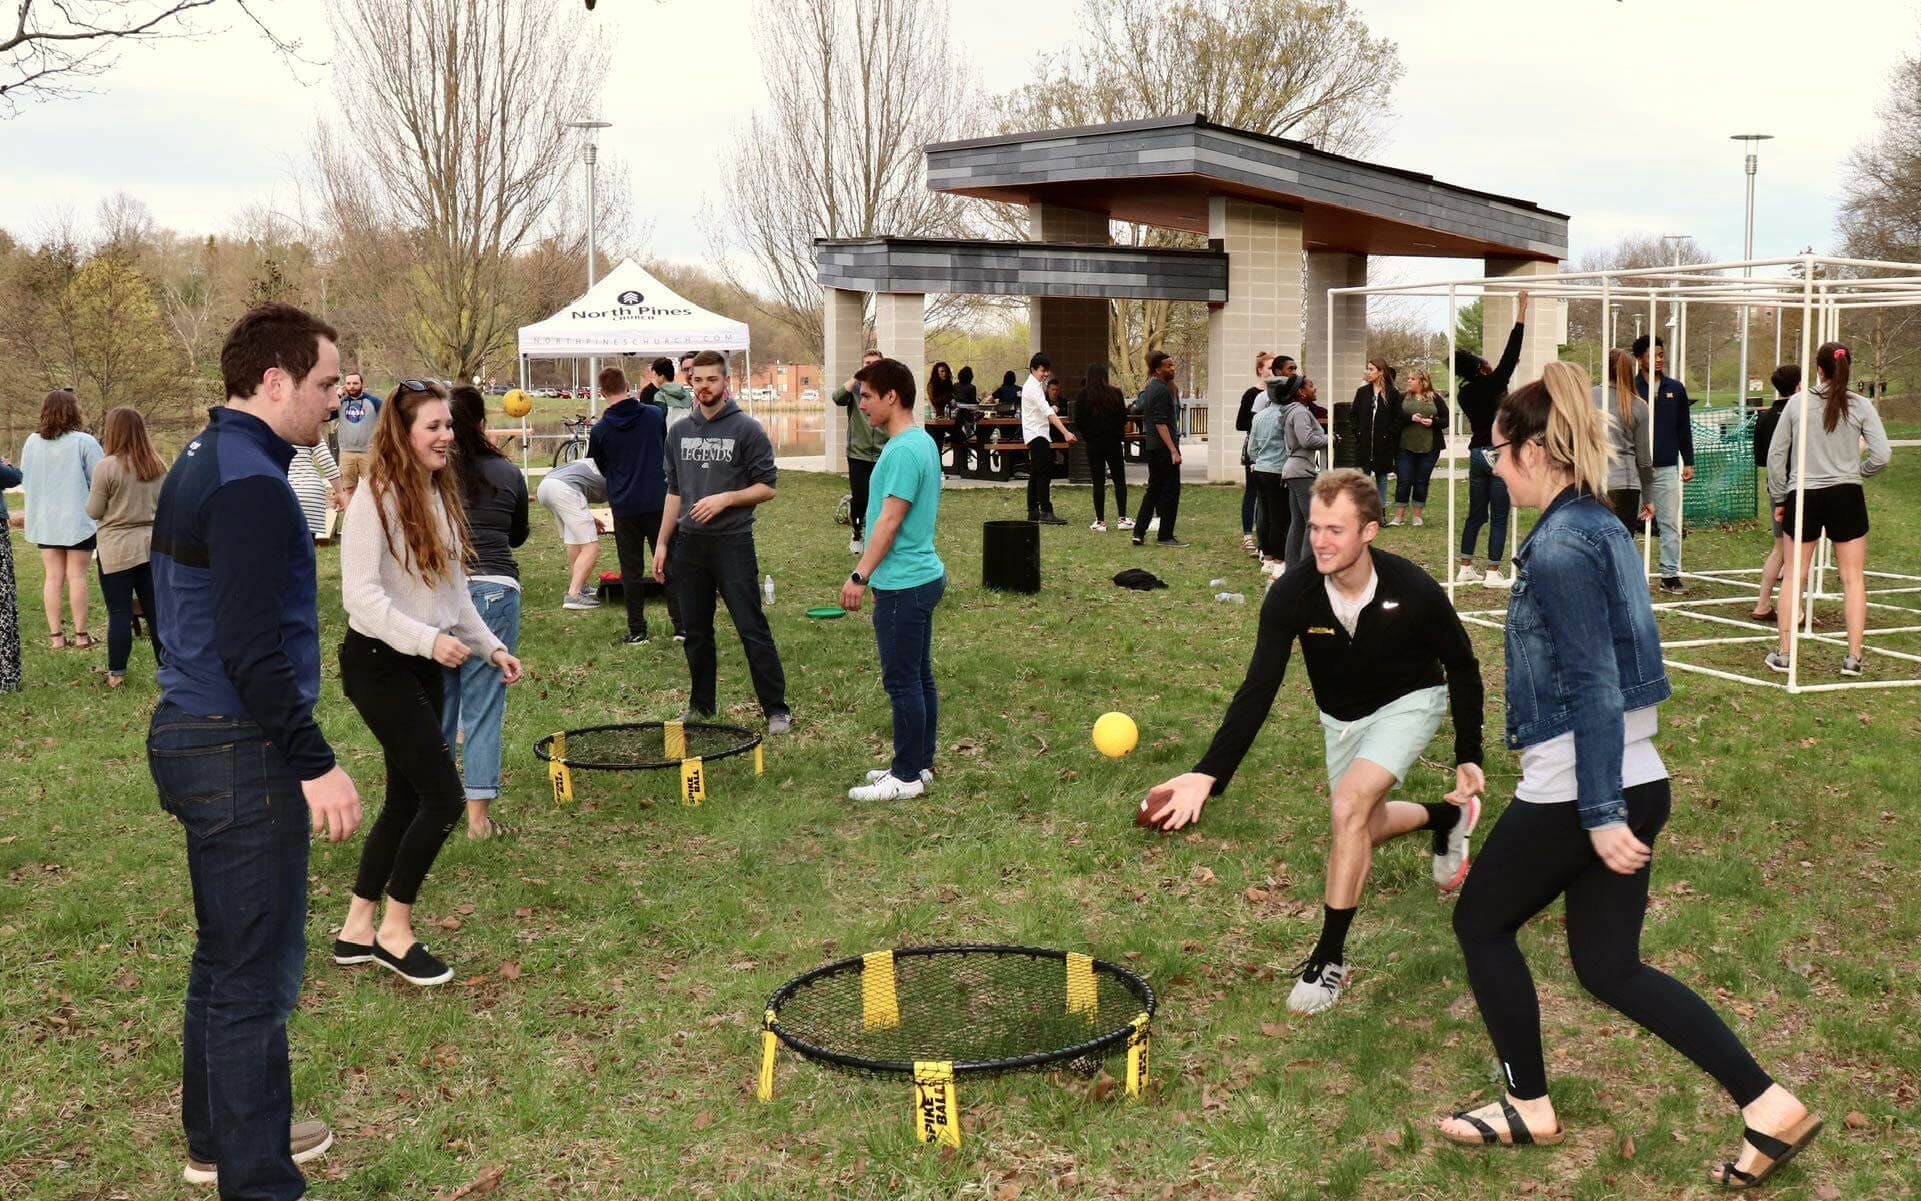 A group of college students playing spike ball on Western Michigan's campus.